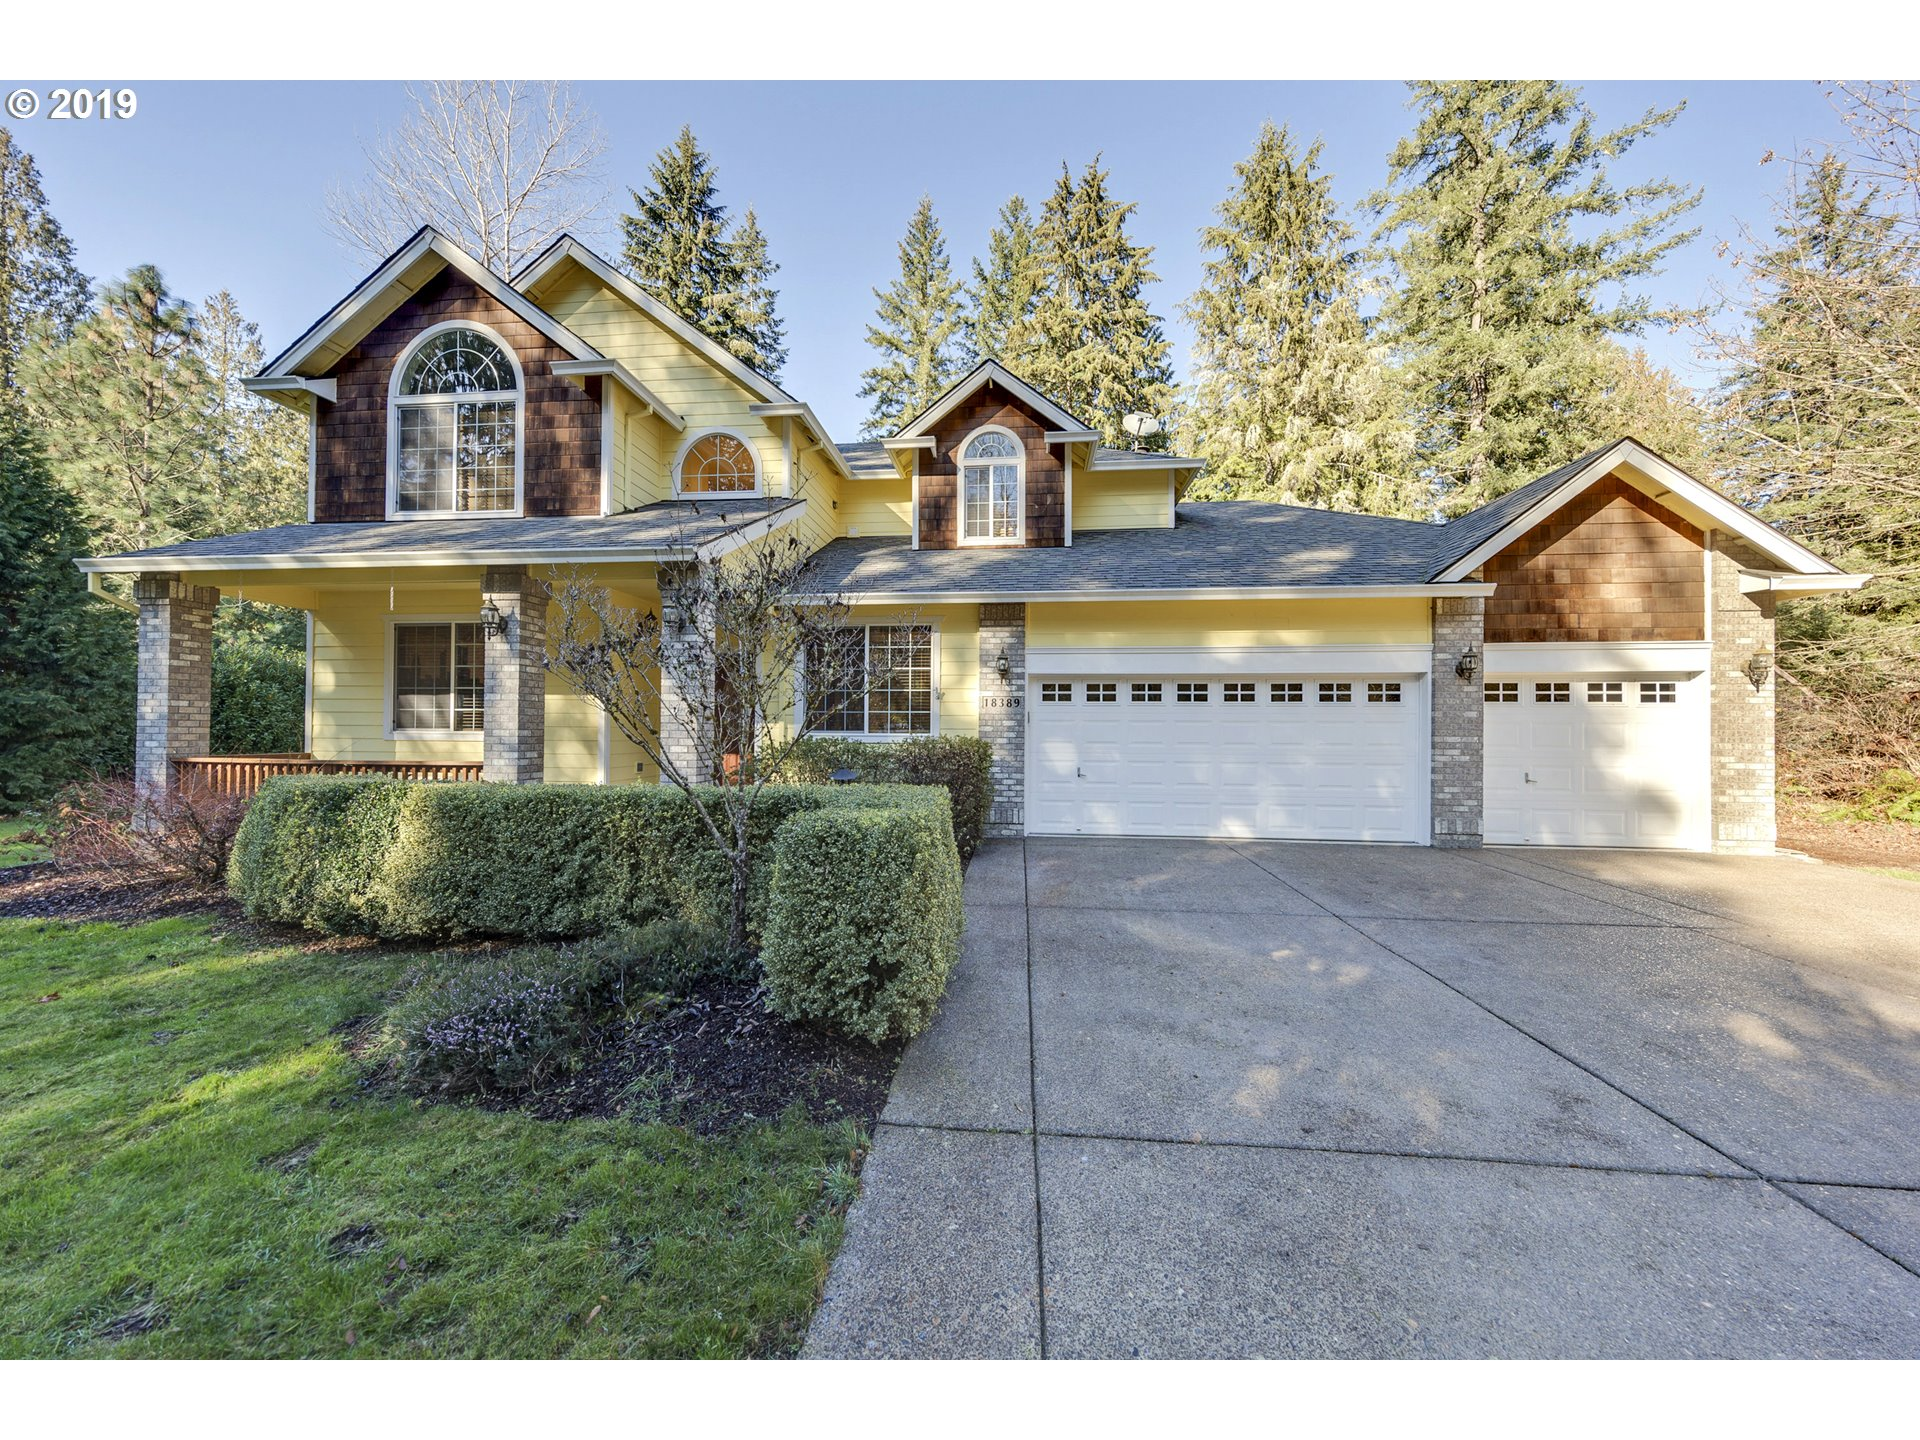 Photo of 18389 S WINNIFRED AVE Molalla OR 97038